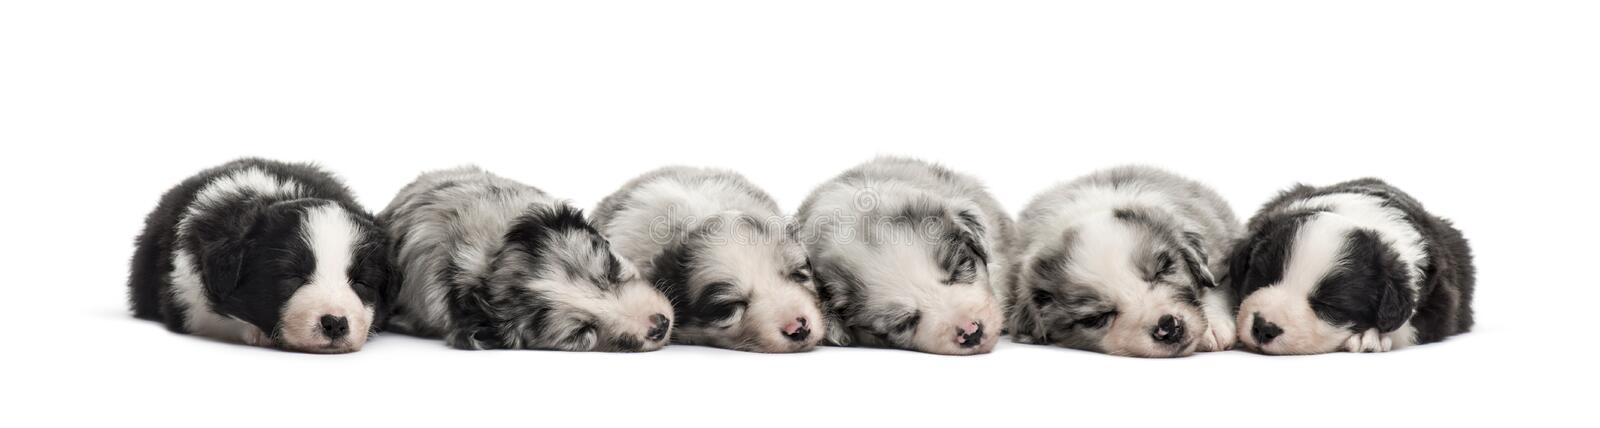 Group of crossbreed puppies sleeping isolated on white. Group of crossbreed puppies sleeping in a row isolated on white royalty free stock photography